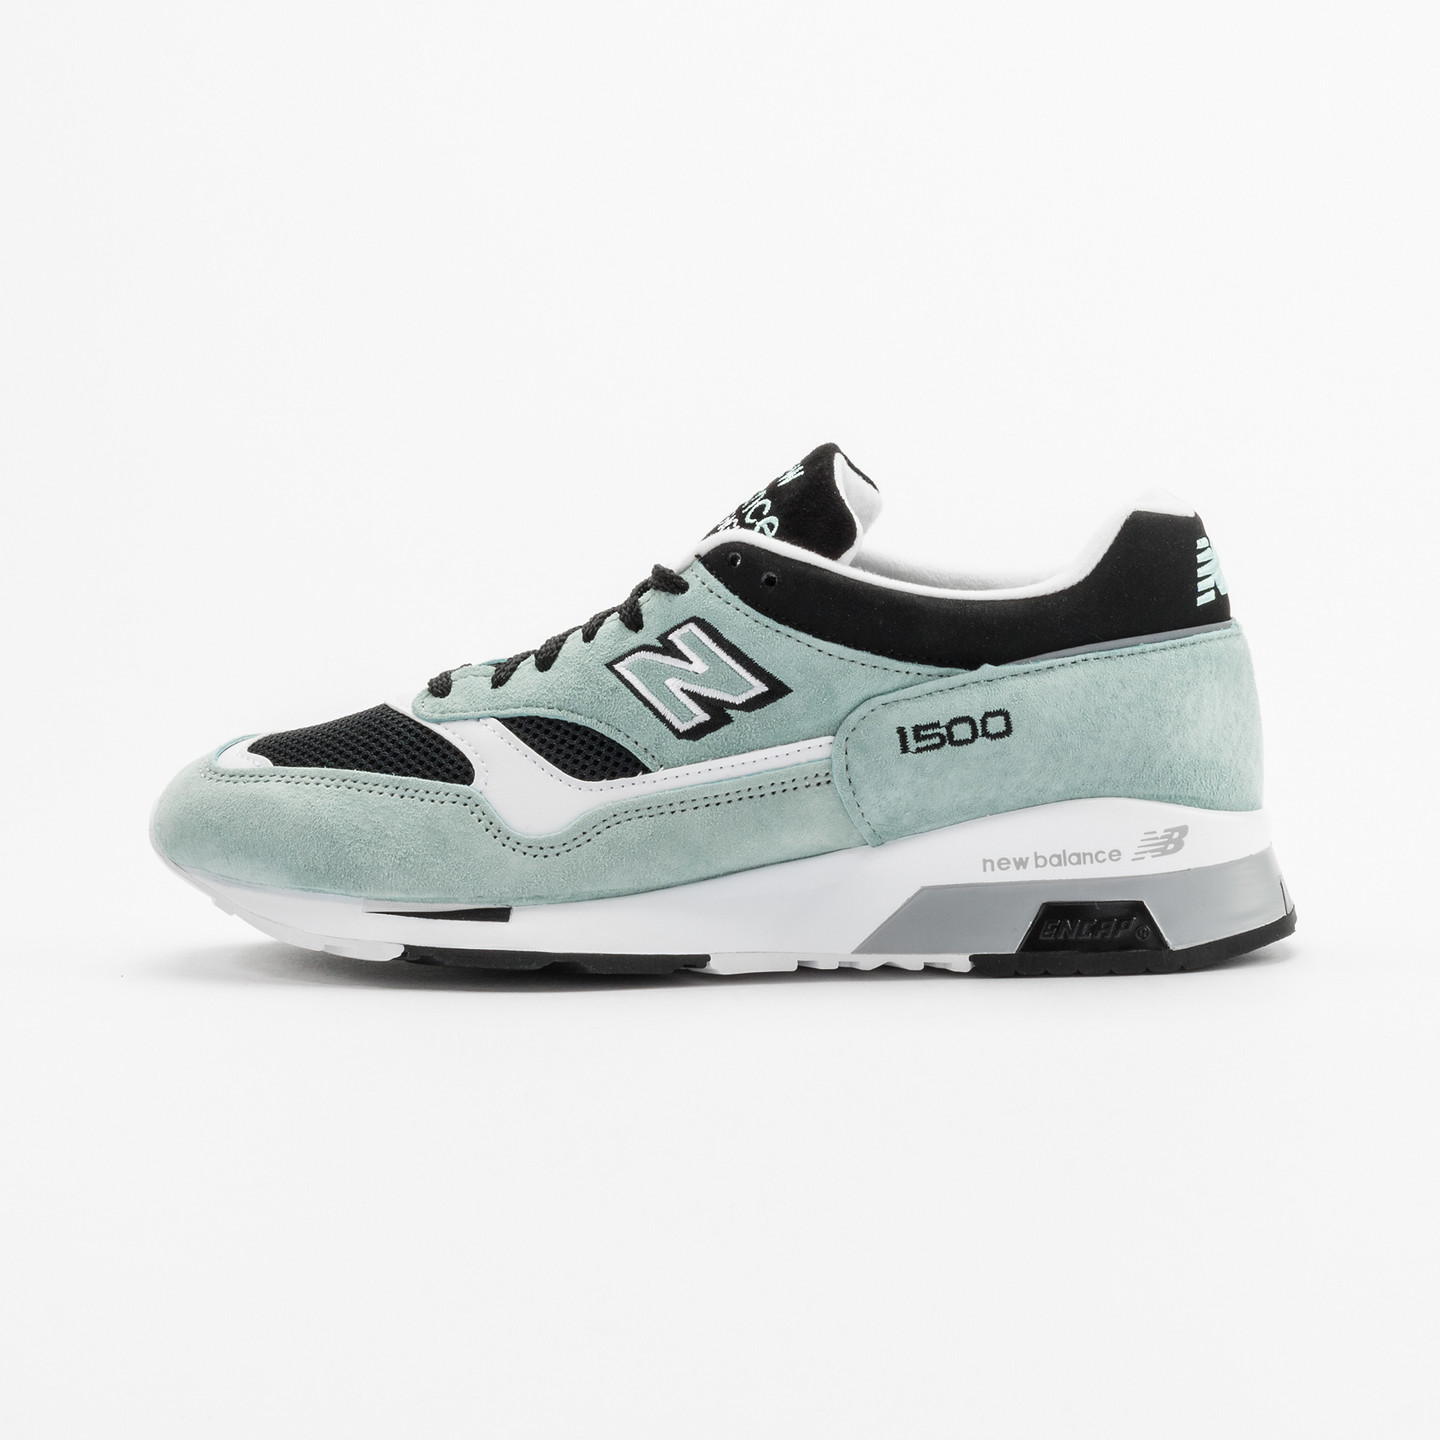 New Balance M1500 MGK - Made in England Mint / Black / White M1500MGK